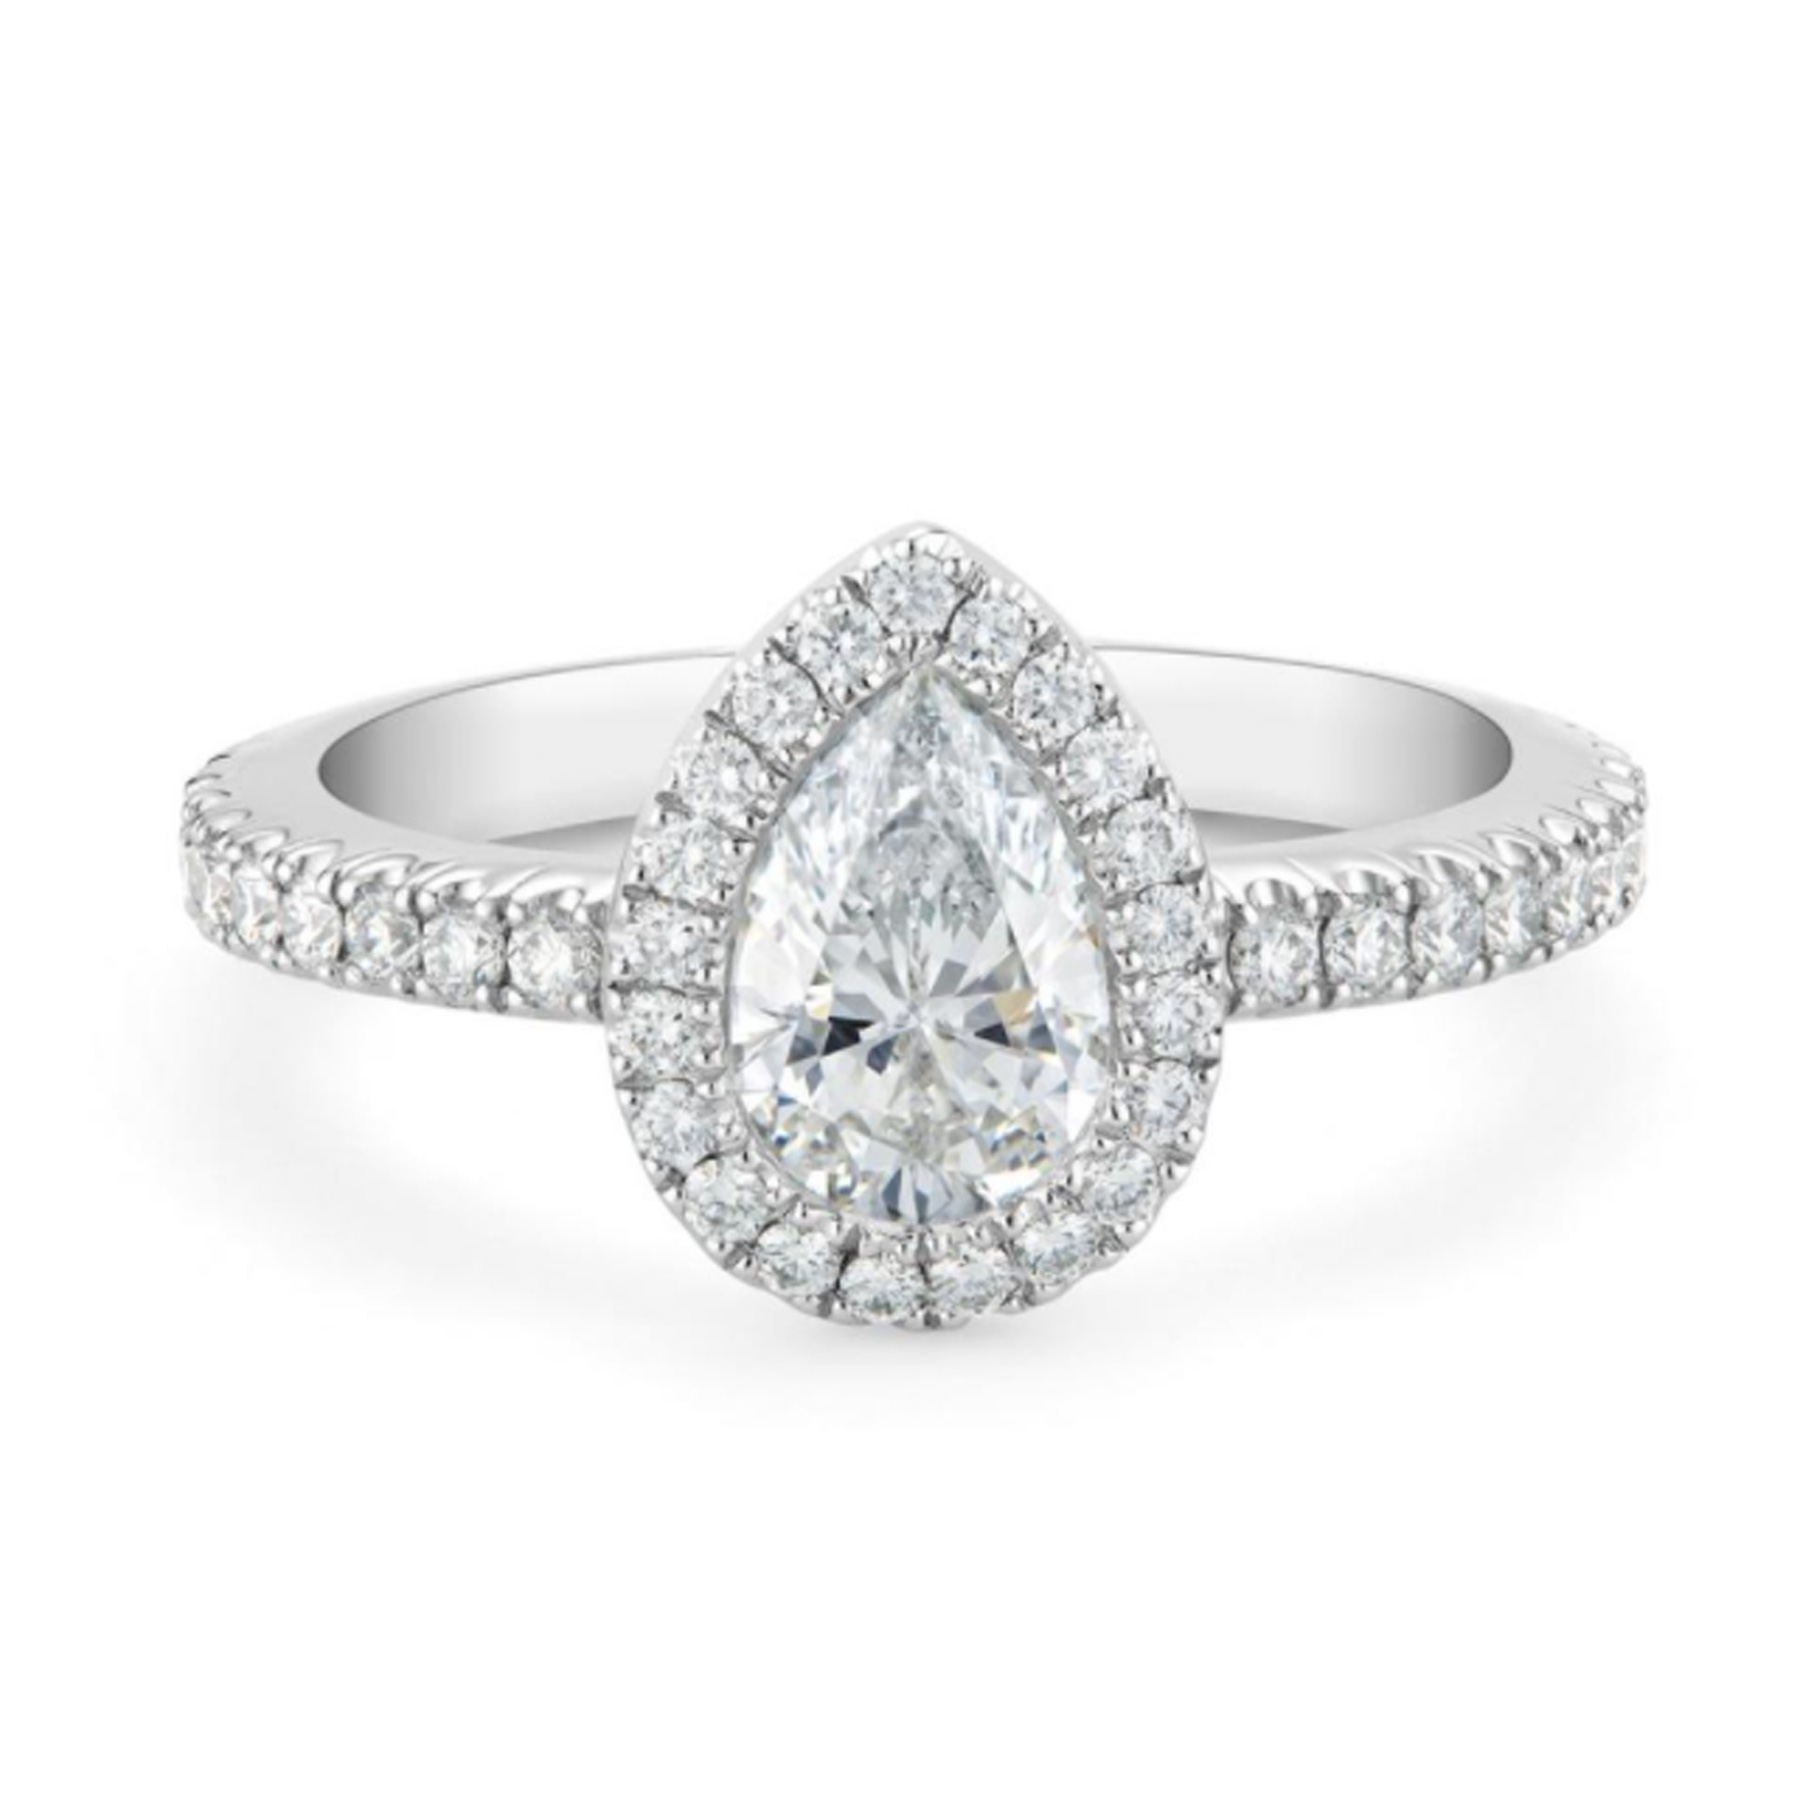 De Beers diamond pear engagement ring with halo